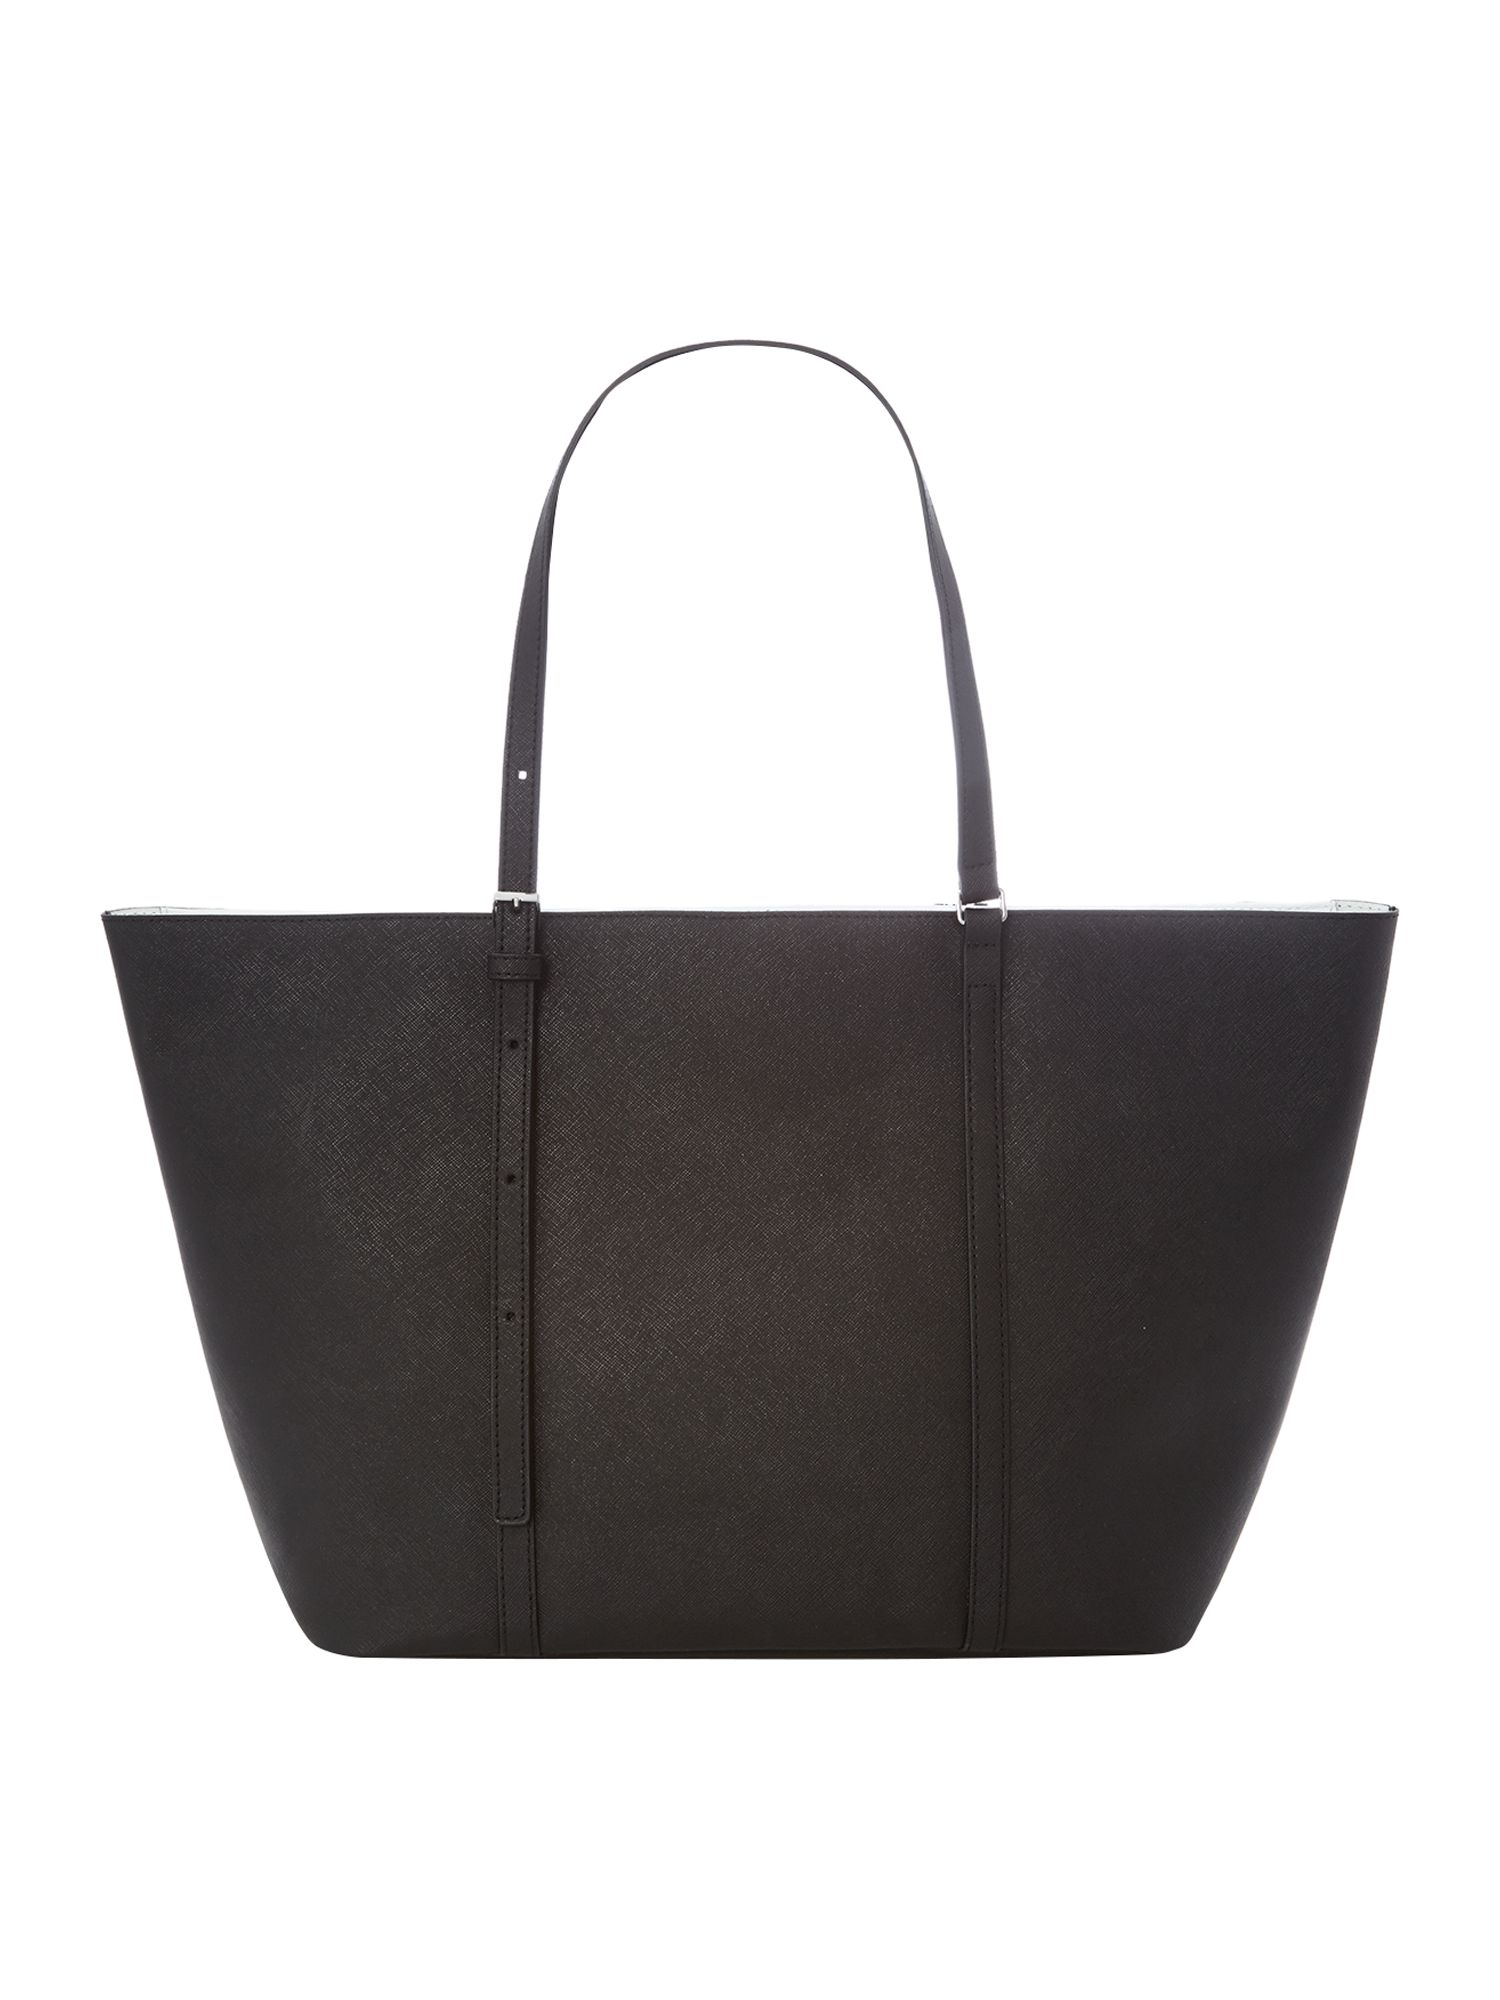 Sofie black large tote bag